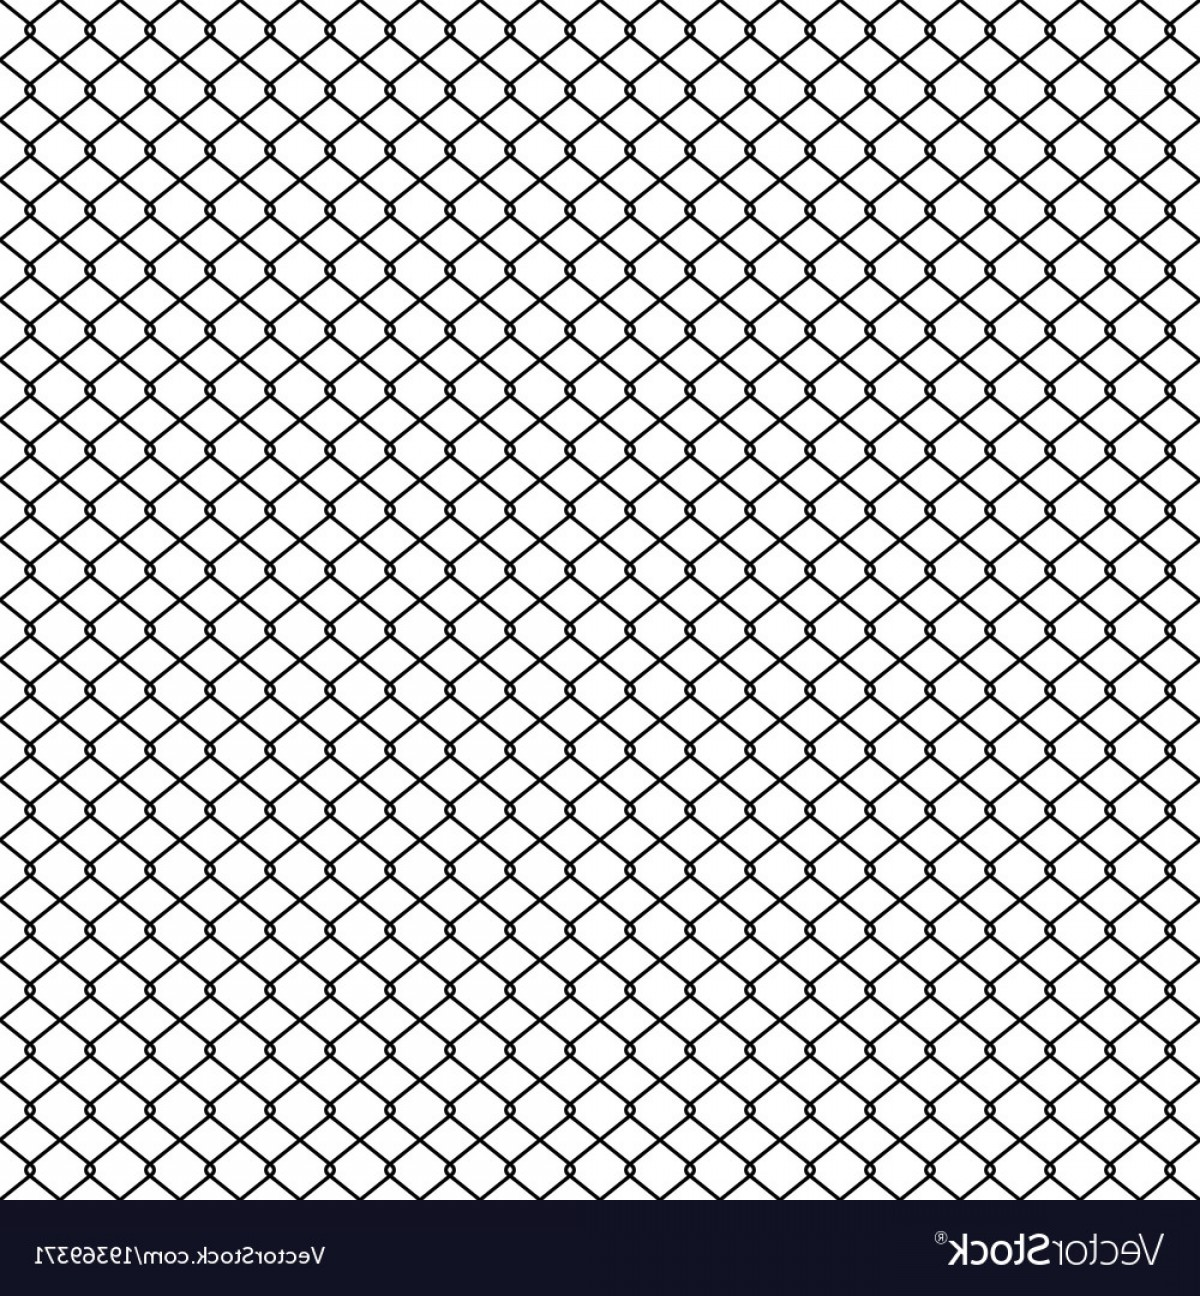 Chain Link Fence Braid Wire Fence Texture Vector | CreateMePink